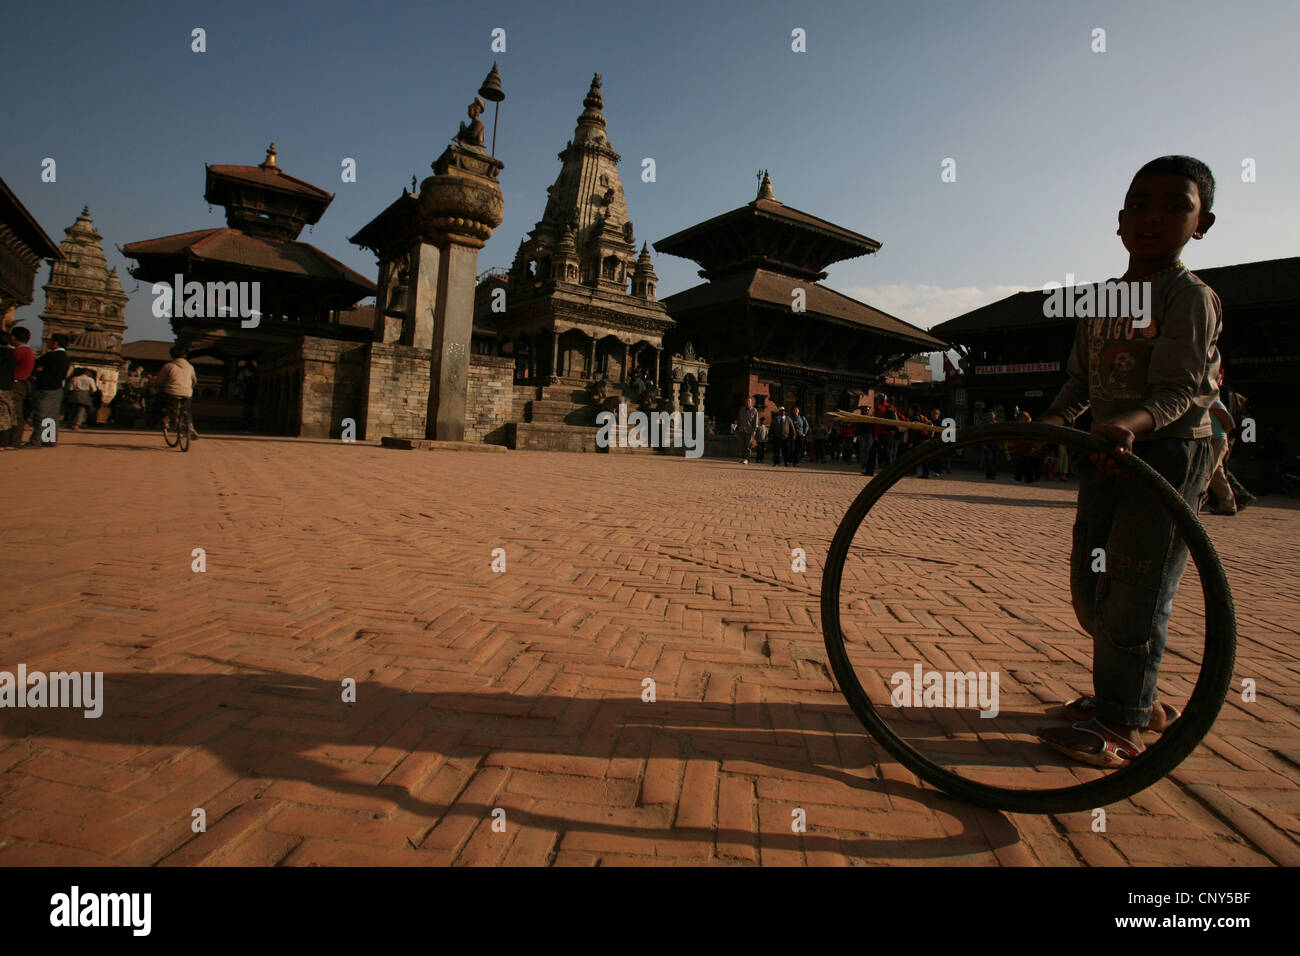 Nepalese boy plays with a pneumatic in Bhaktapur Durbar Square in Bhaktapur, Nepal. Stock Photo